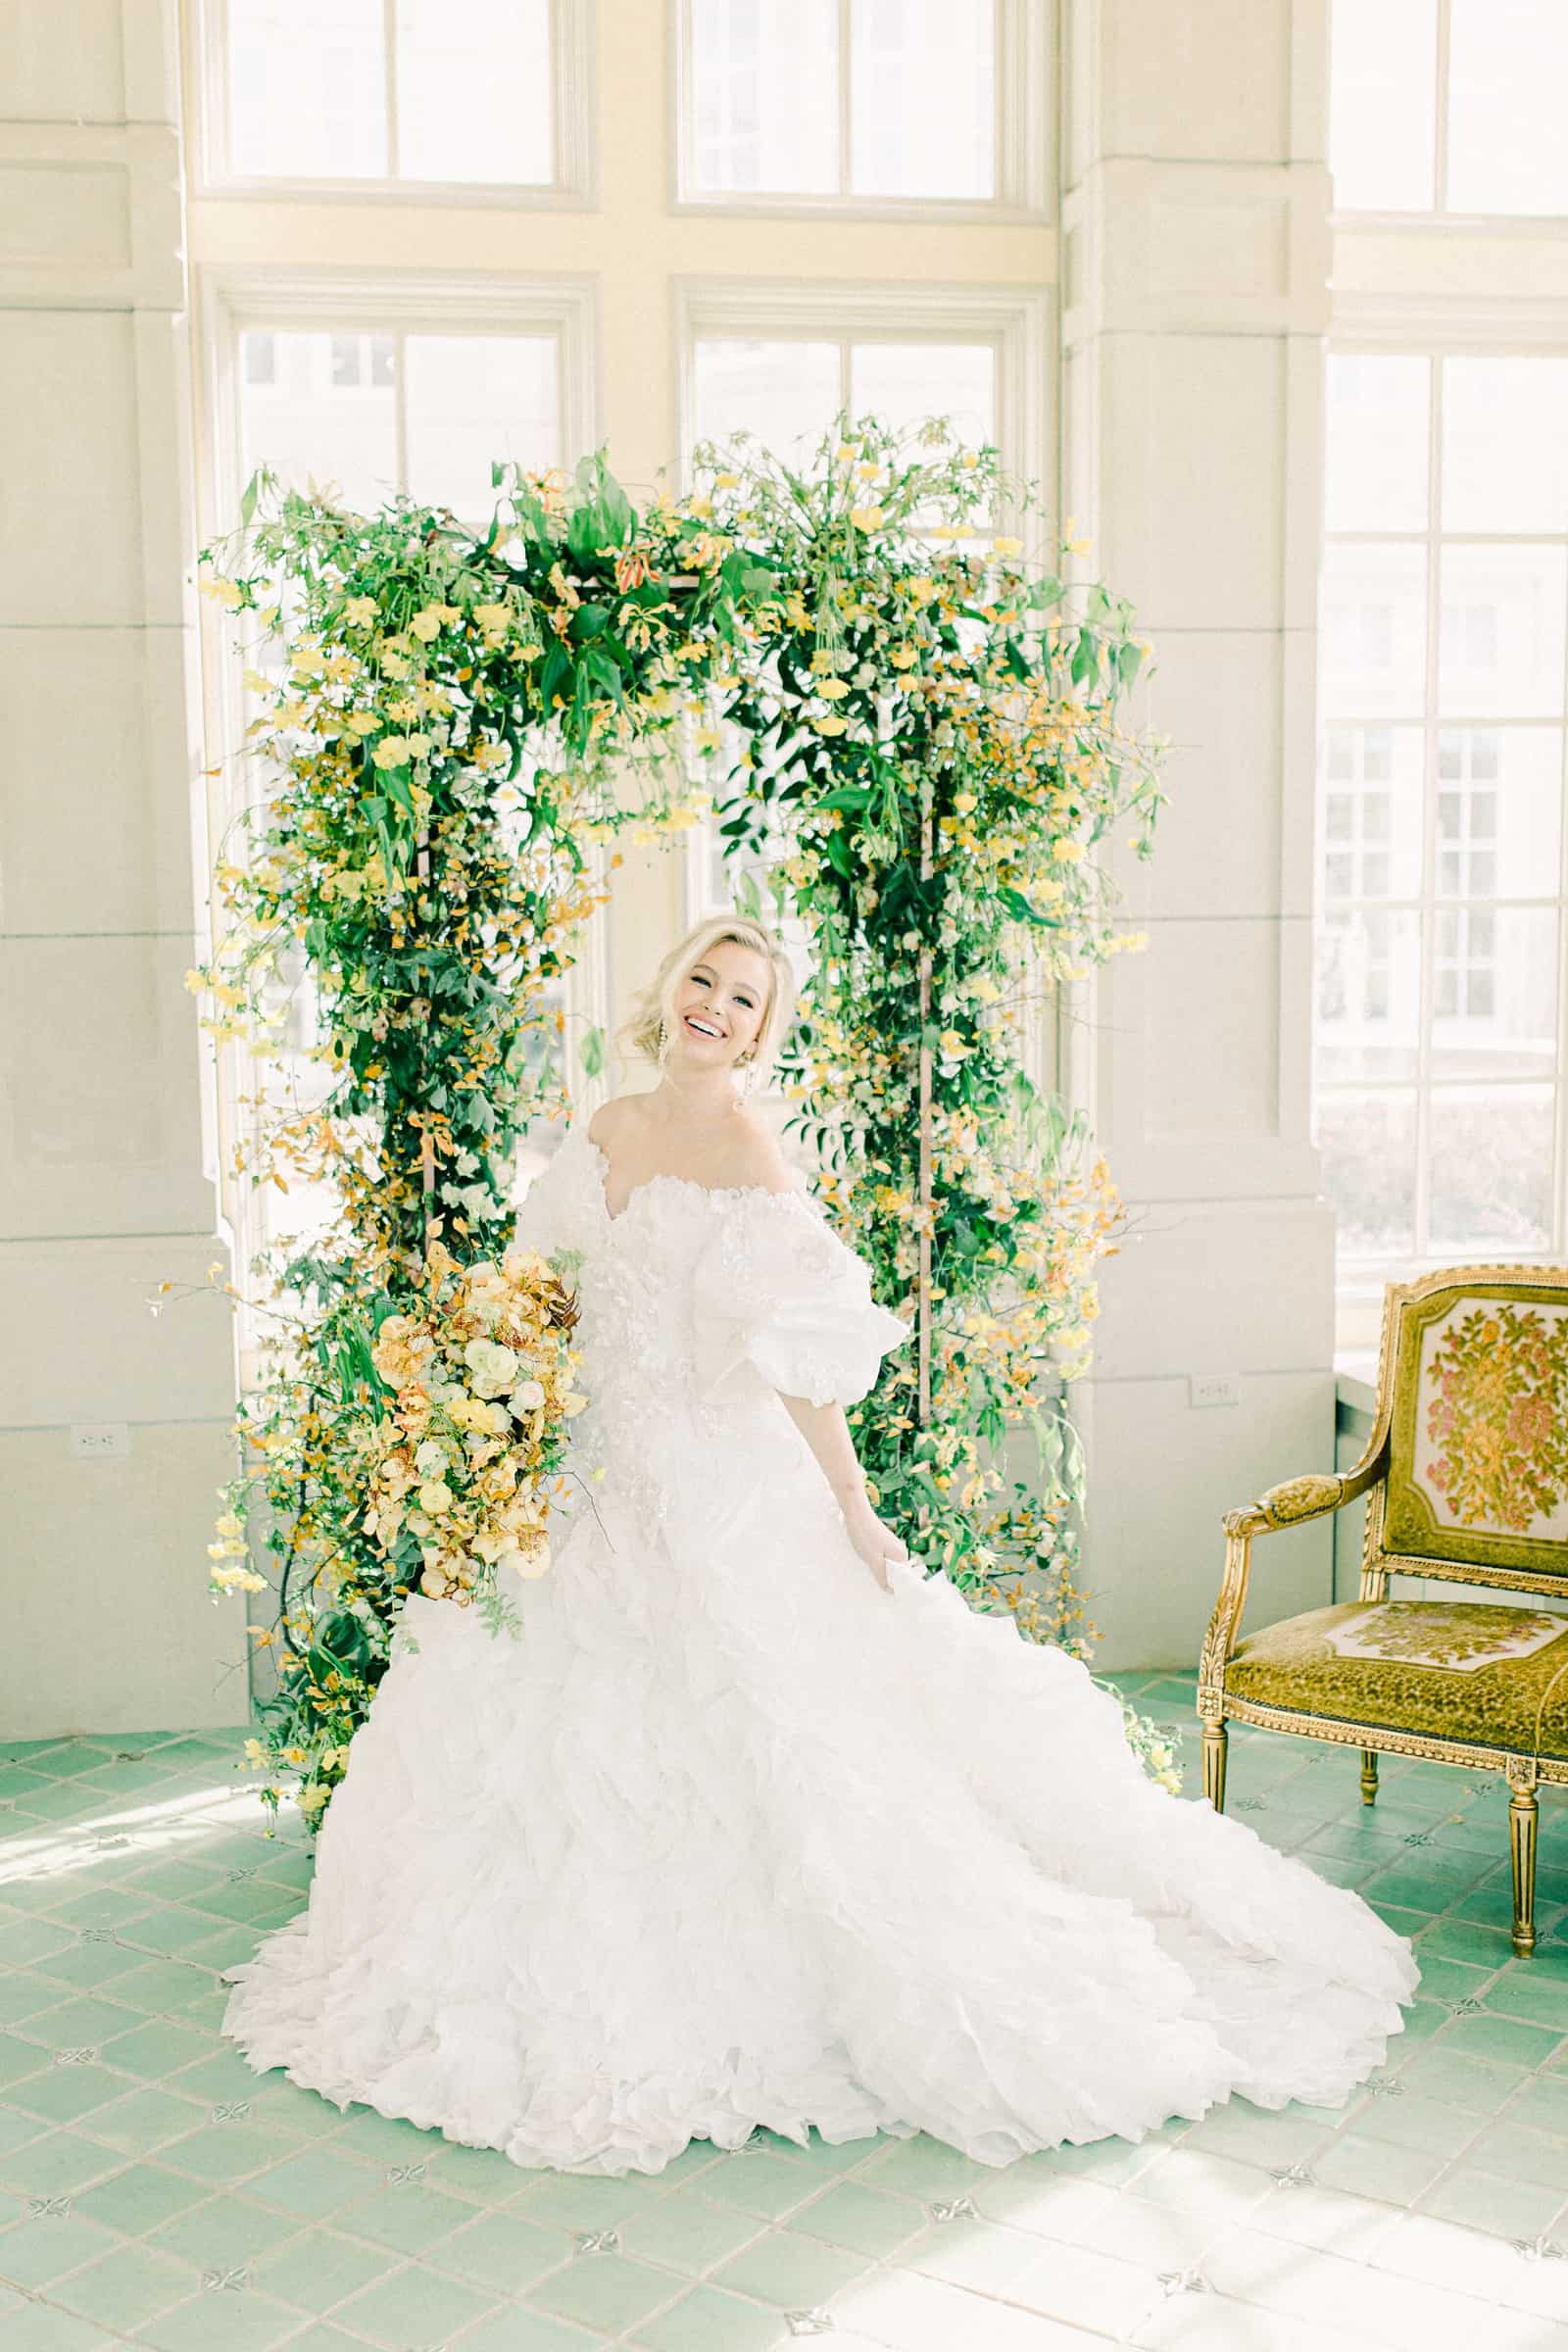 Bride wearing off shoulder ball gown with puff sleeves in front of floral arch